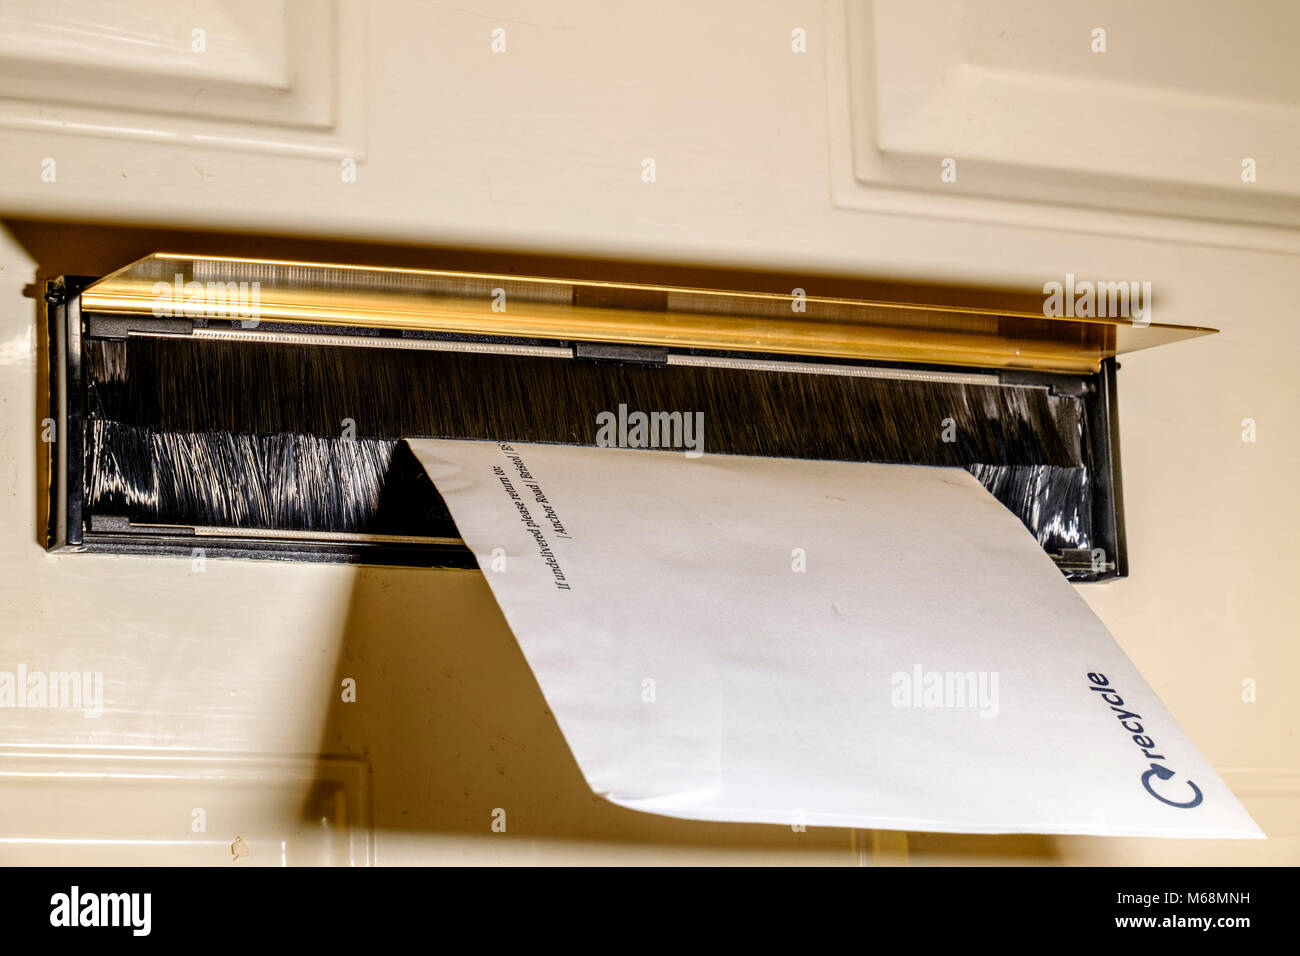 A draft excluder fitted to a front door, - Stock Image